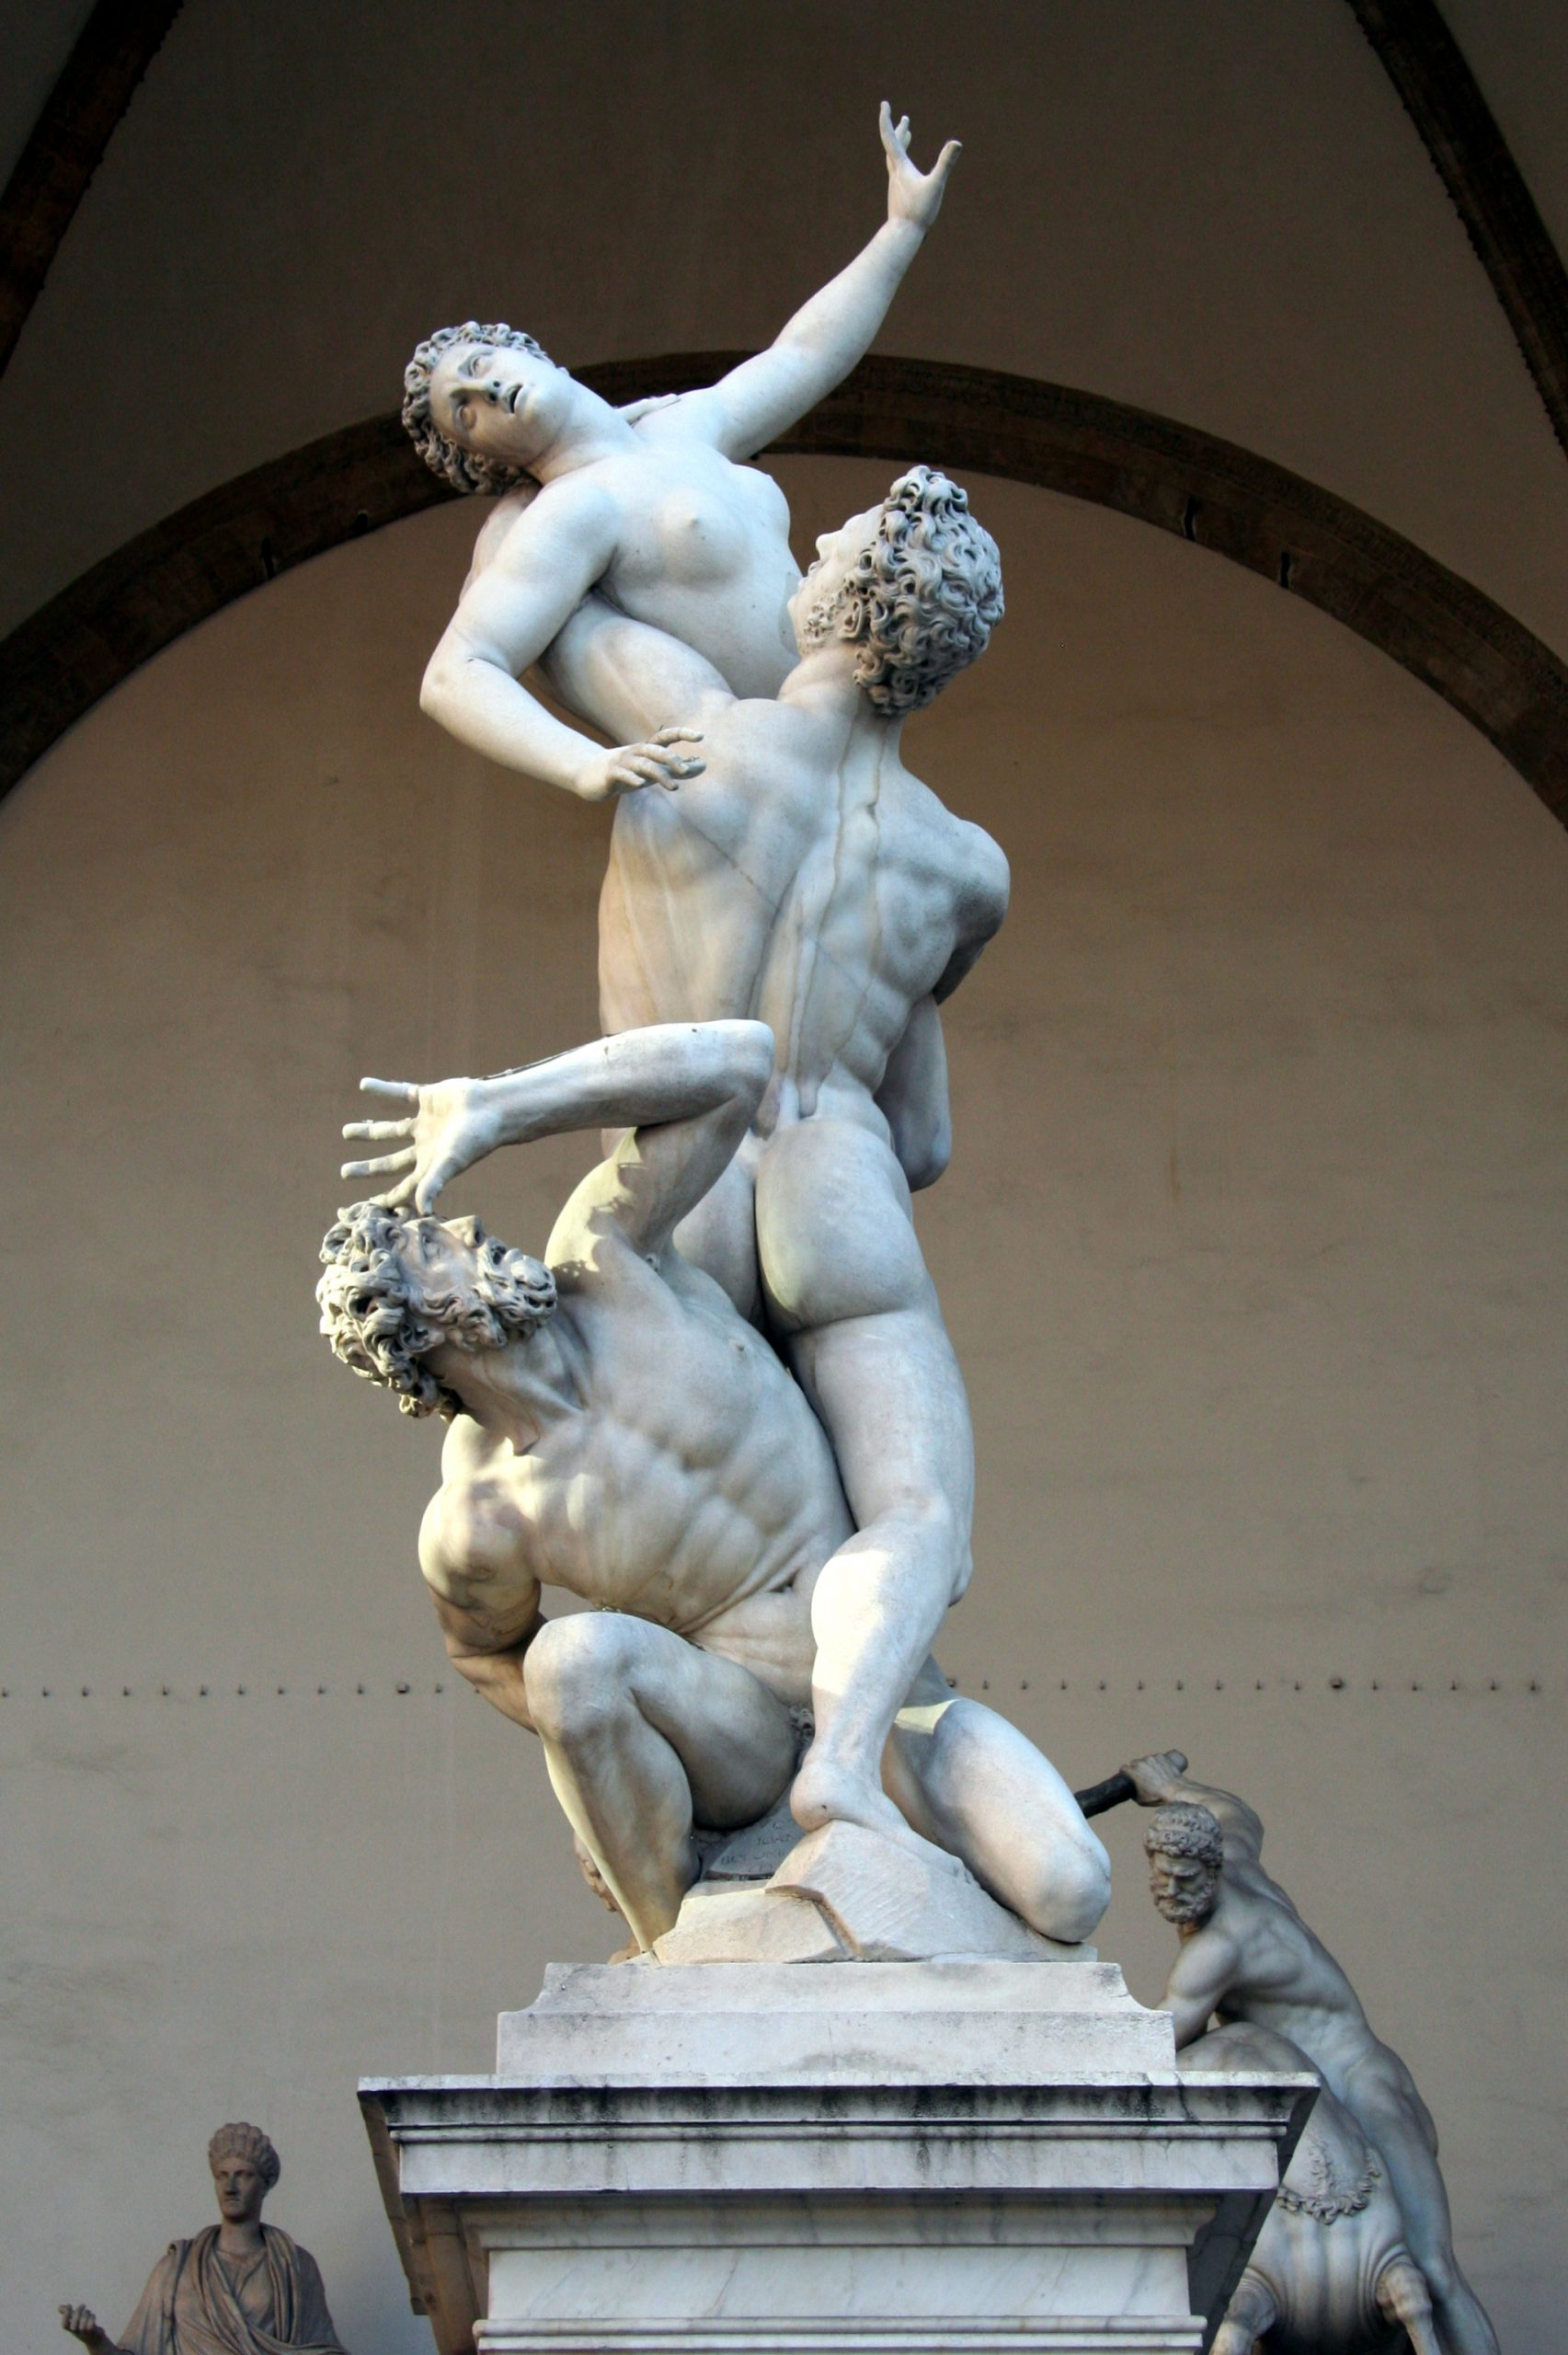 2008, Giambologna, The Rape of the Sabine Women, Loggia die Lanzi, Florence, Italy